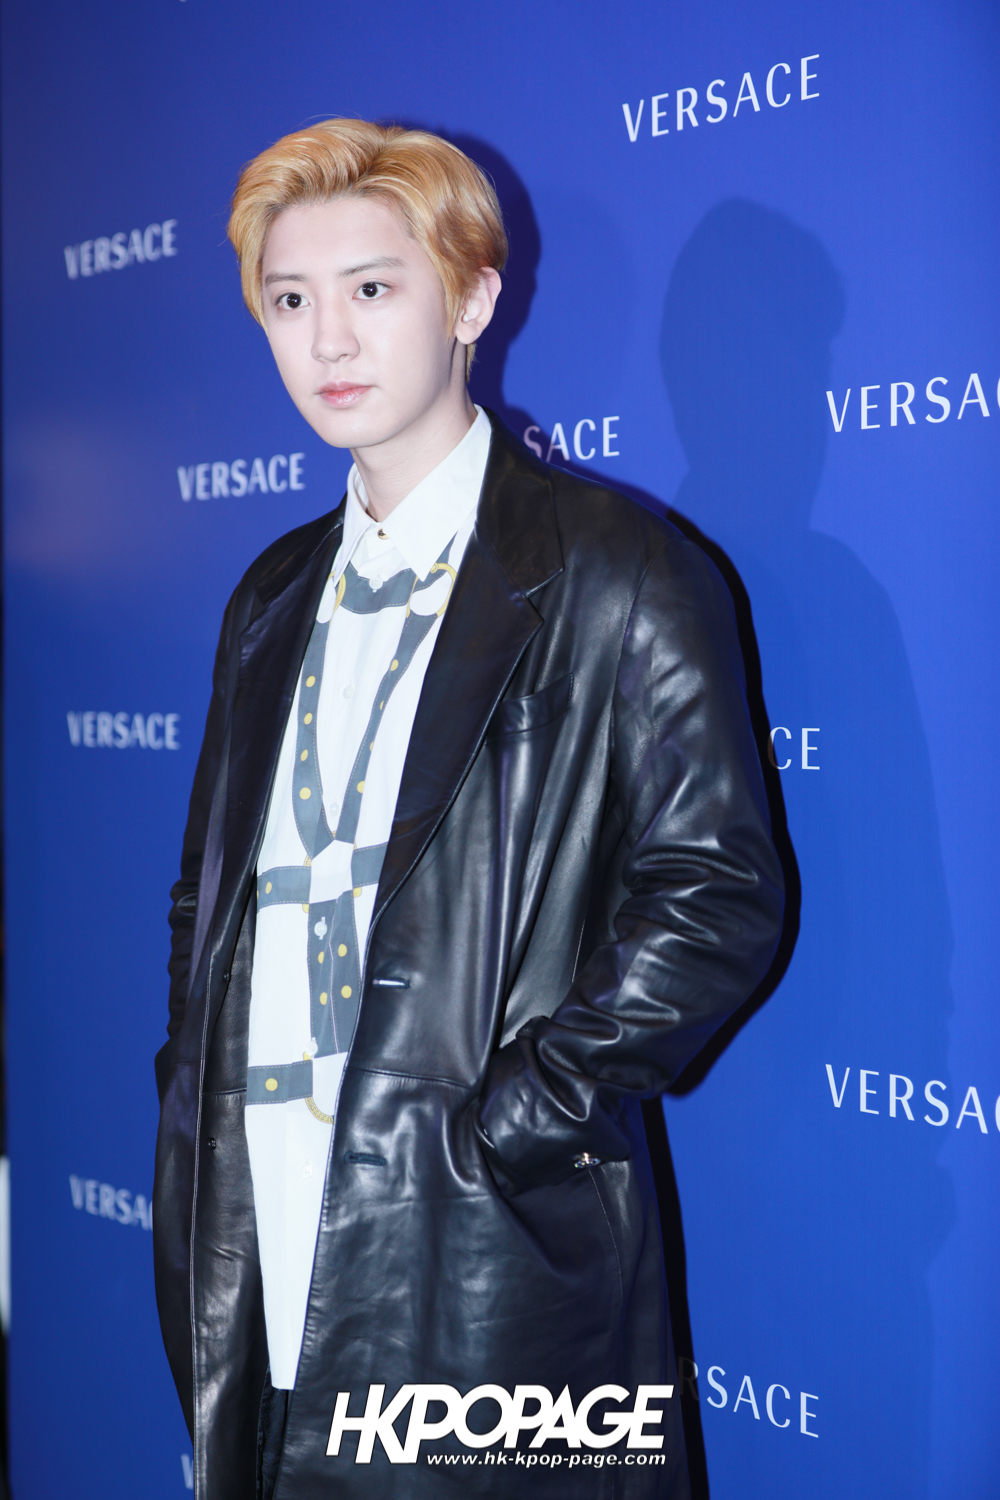 [HK.KPOP.PAGE] 190426_Chanyeol_VERSACE EVENT-8